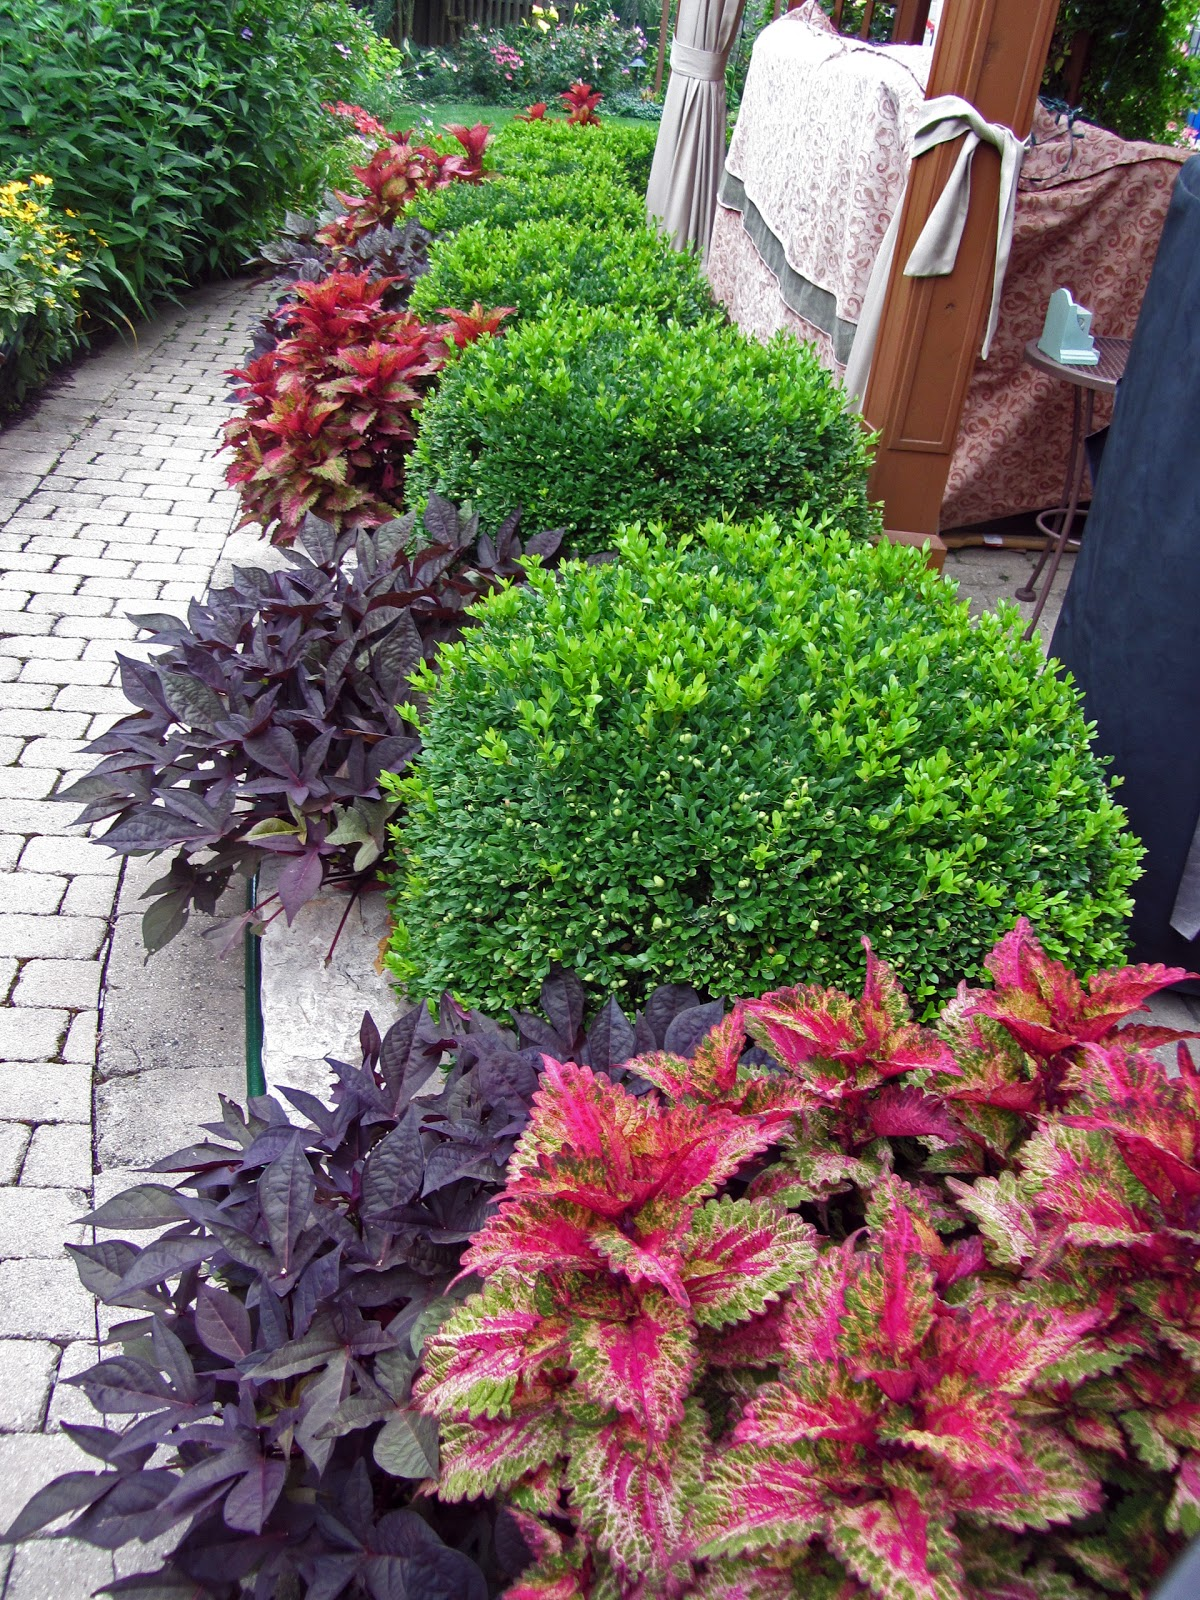 Year round plants for flower beds - I Am In Love With The Color Contrasts Of The Green Velvet Boxwood Paired With The Red Potato Vine And Coleus Wow Google Image Result For Http